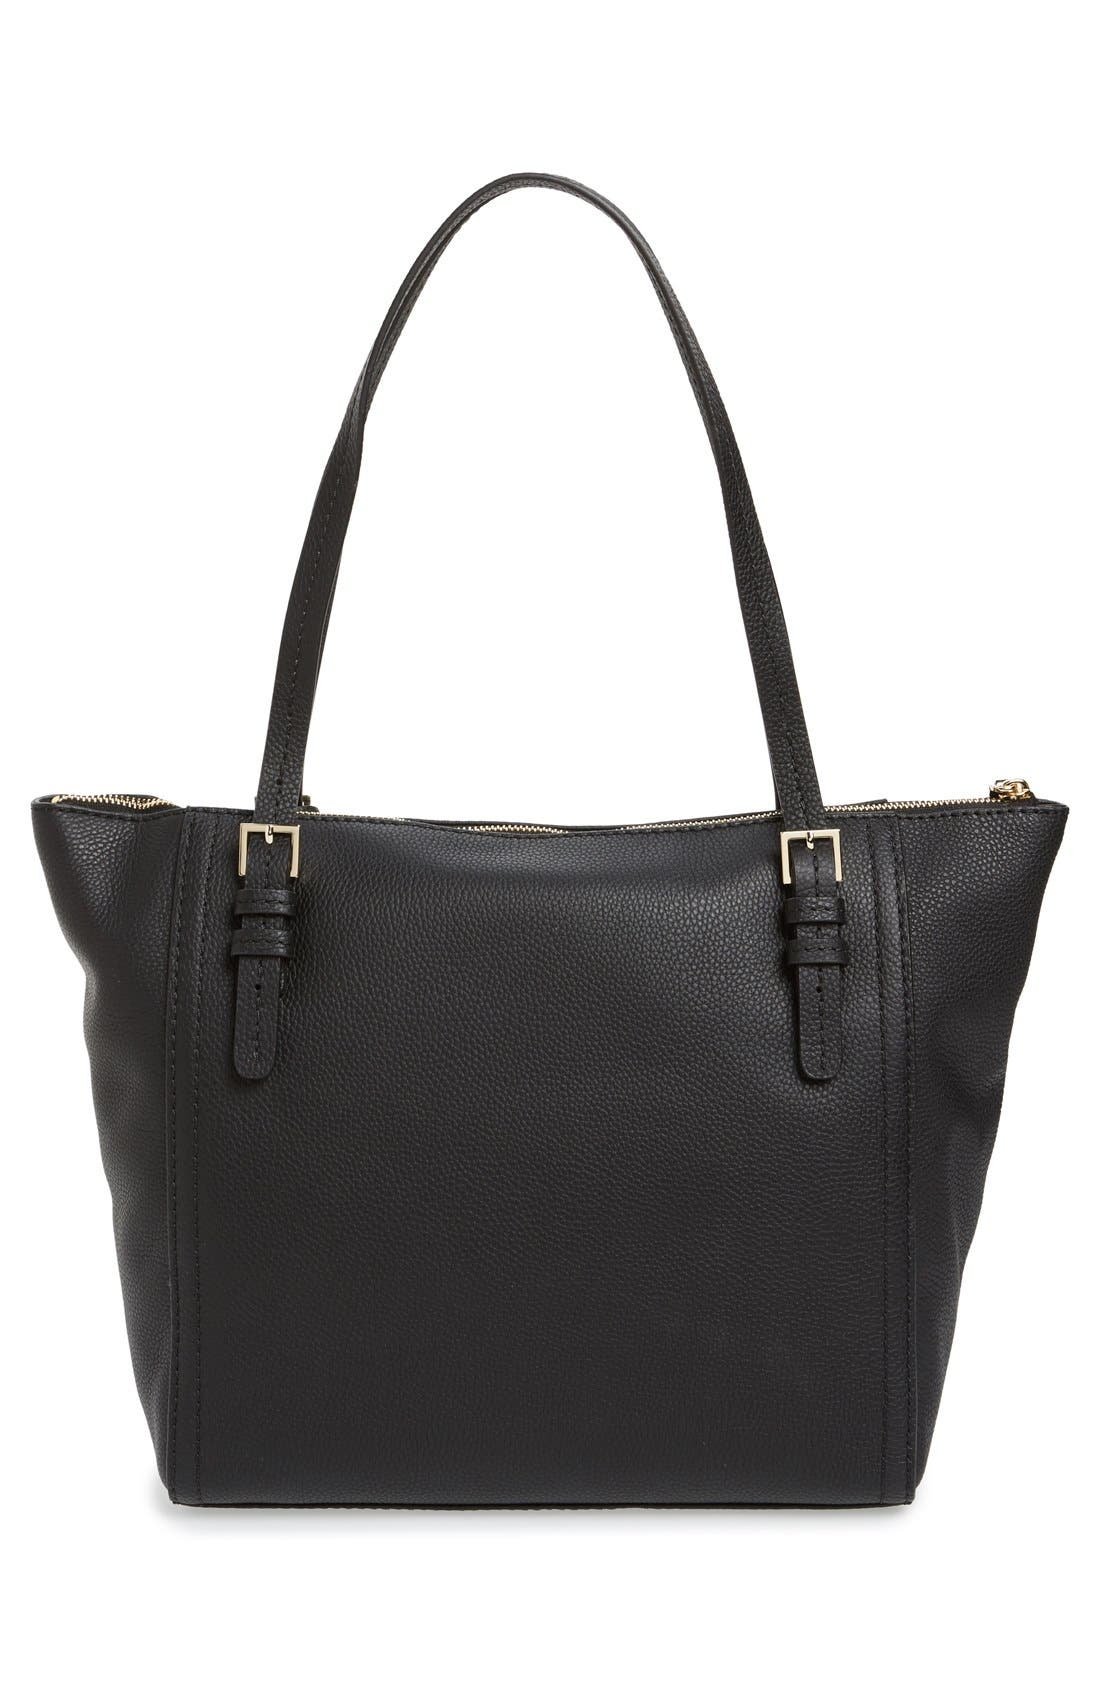 orchard street - maya leather tote,                             Alternate thumbnail 8, color,                             001